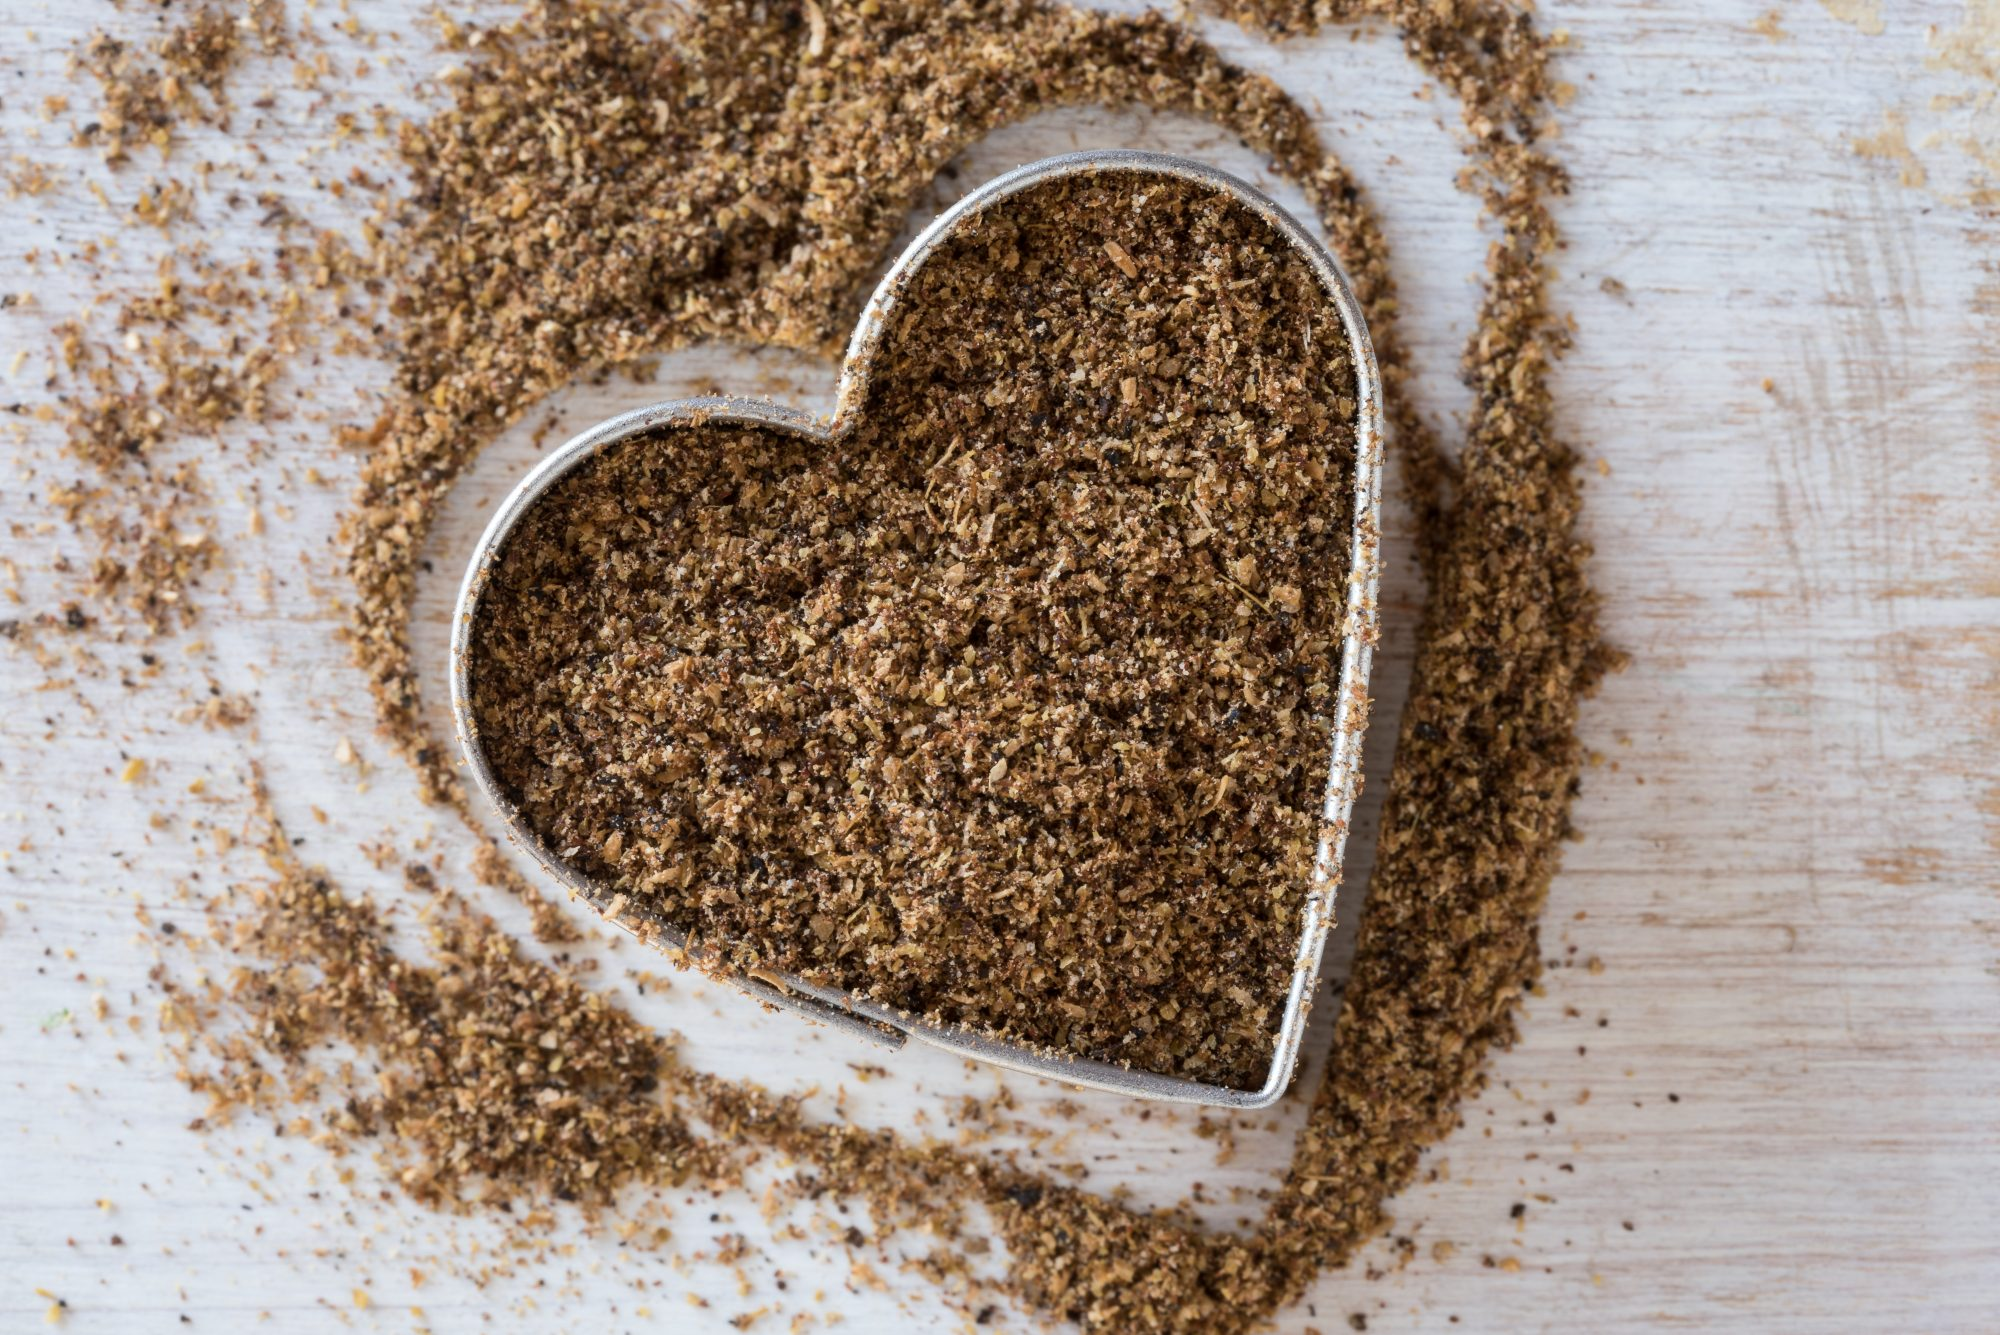 Garam masala heart Getty 5/27/20